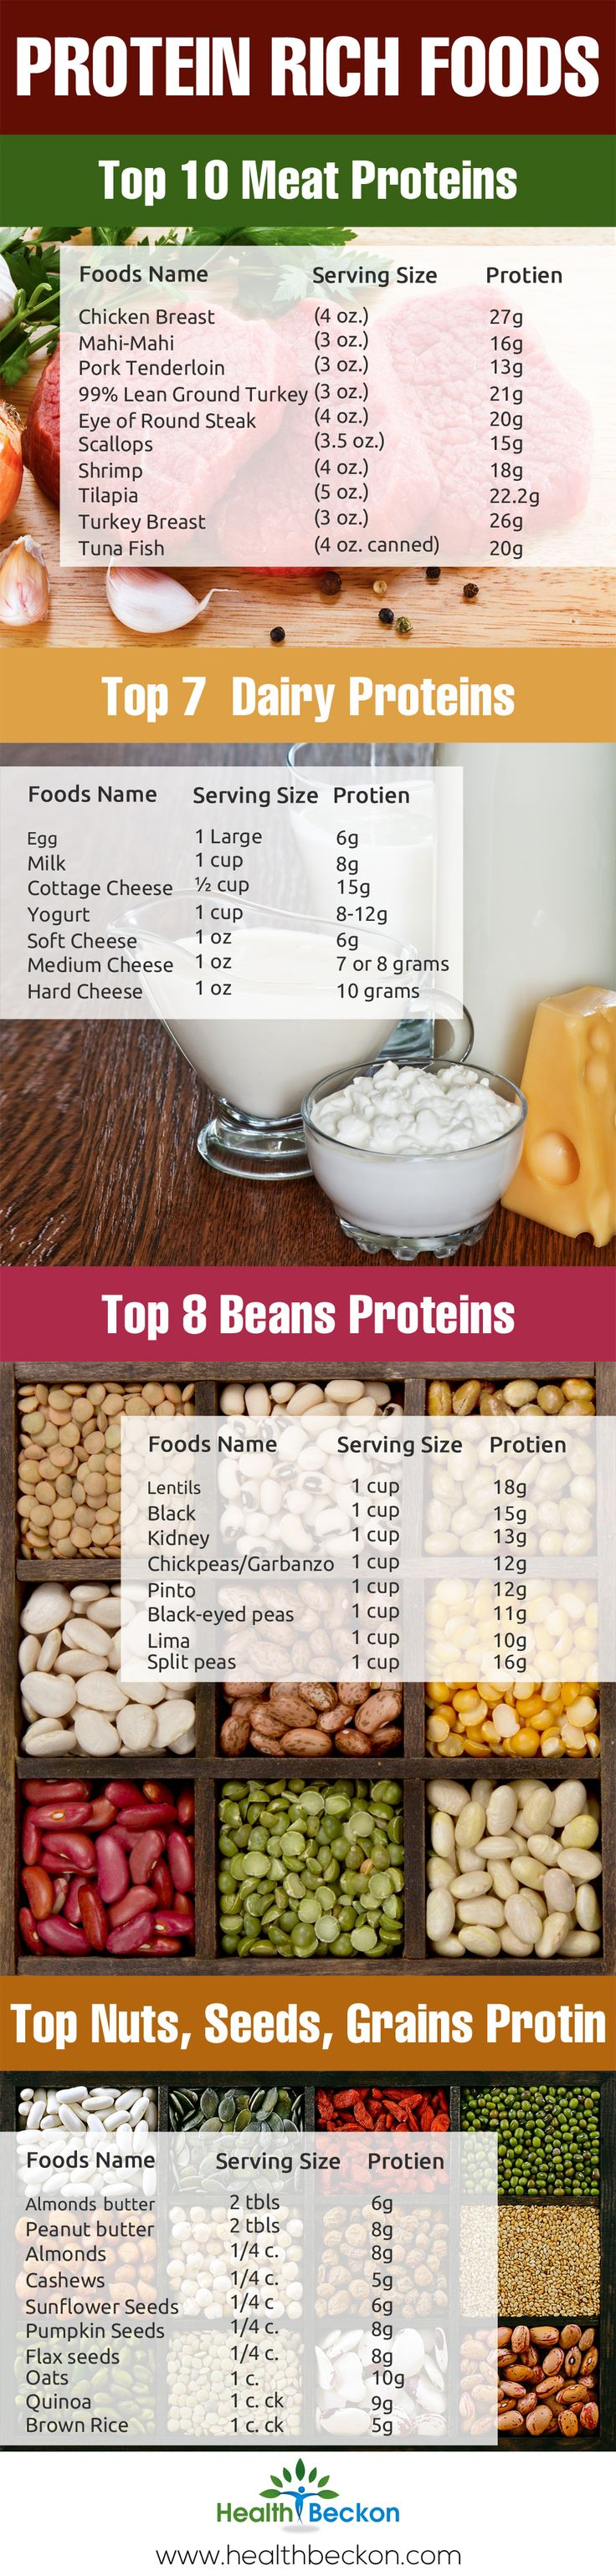 Top 20 High Protein Rich Foods